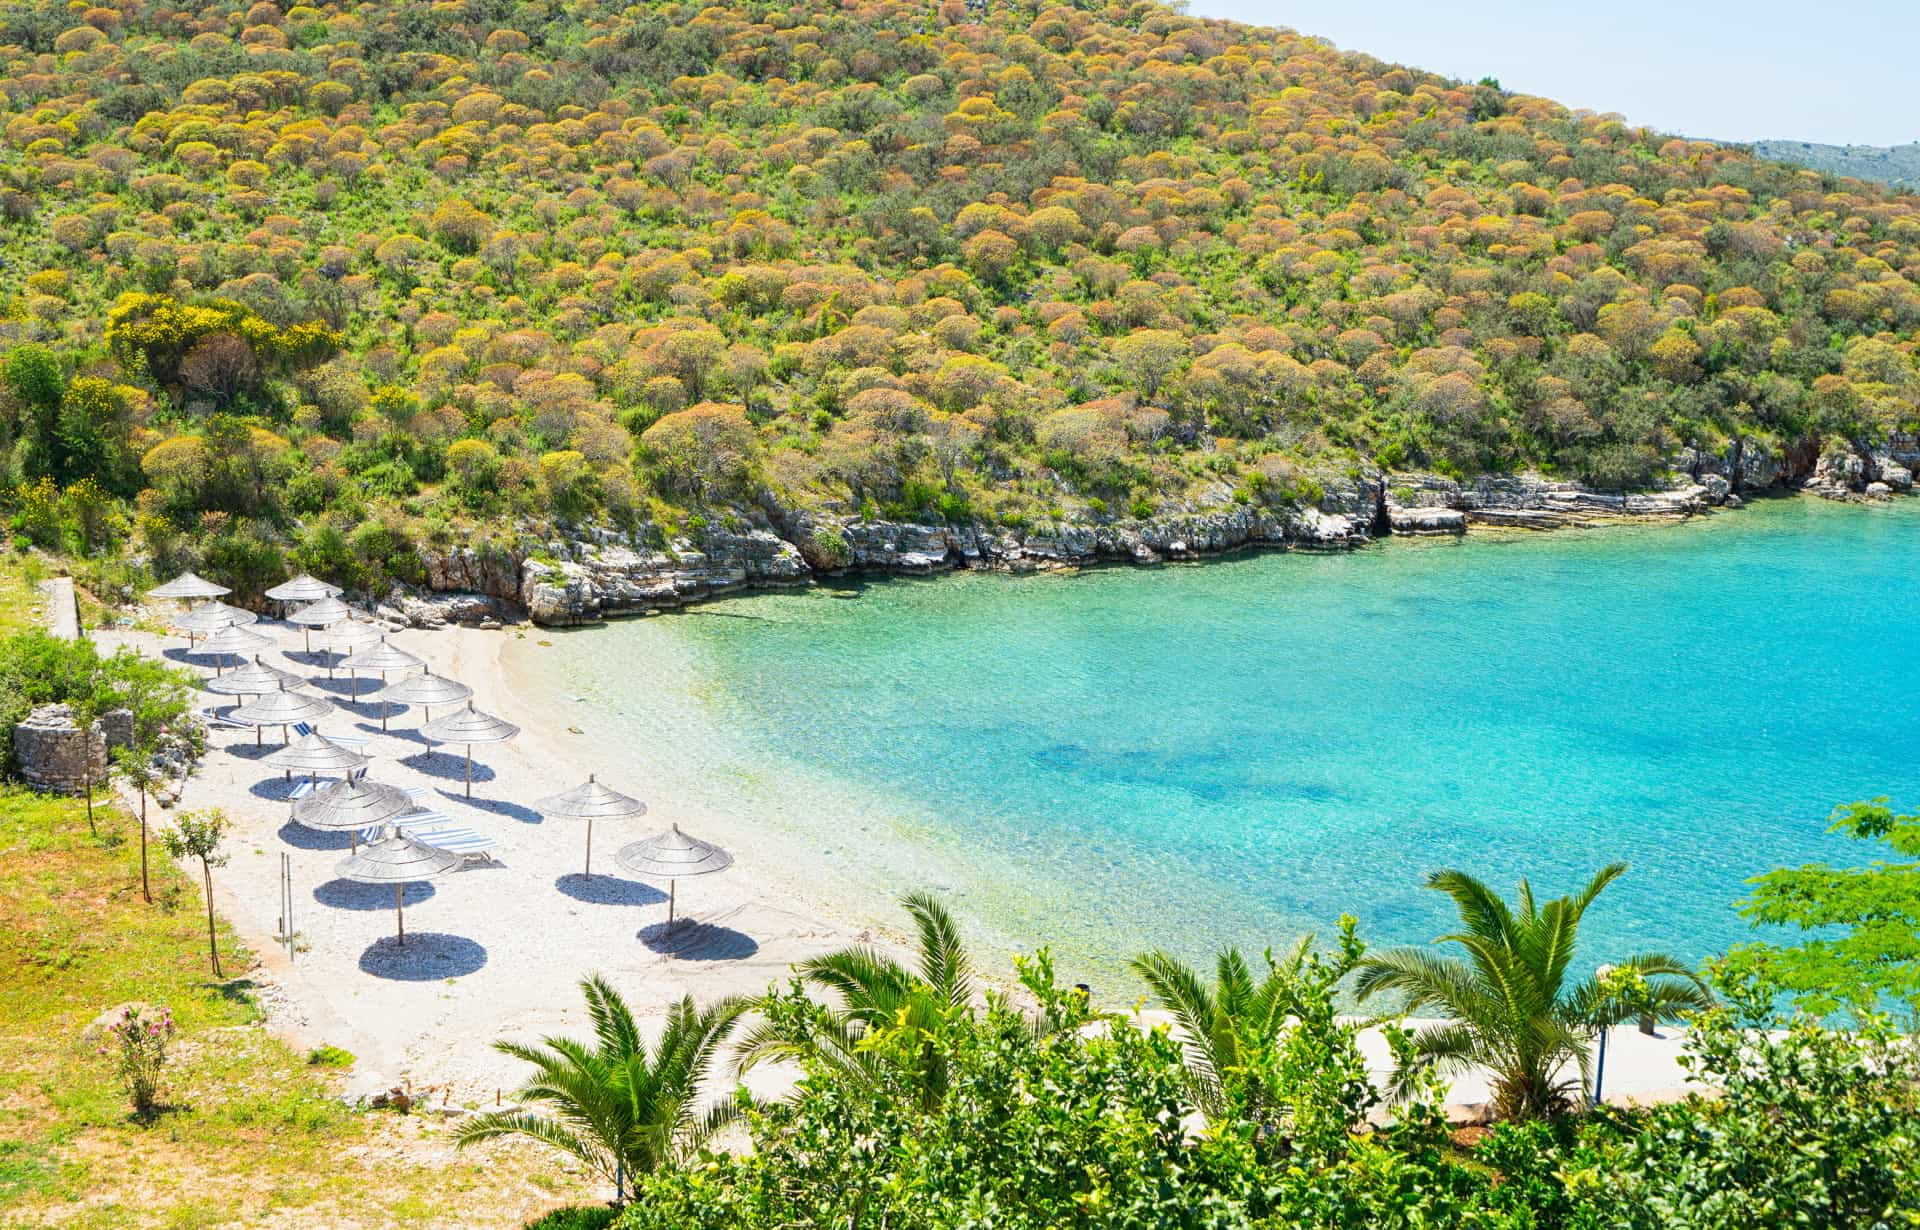 The Italian or the French Riviera? Skip both and head to Albania